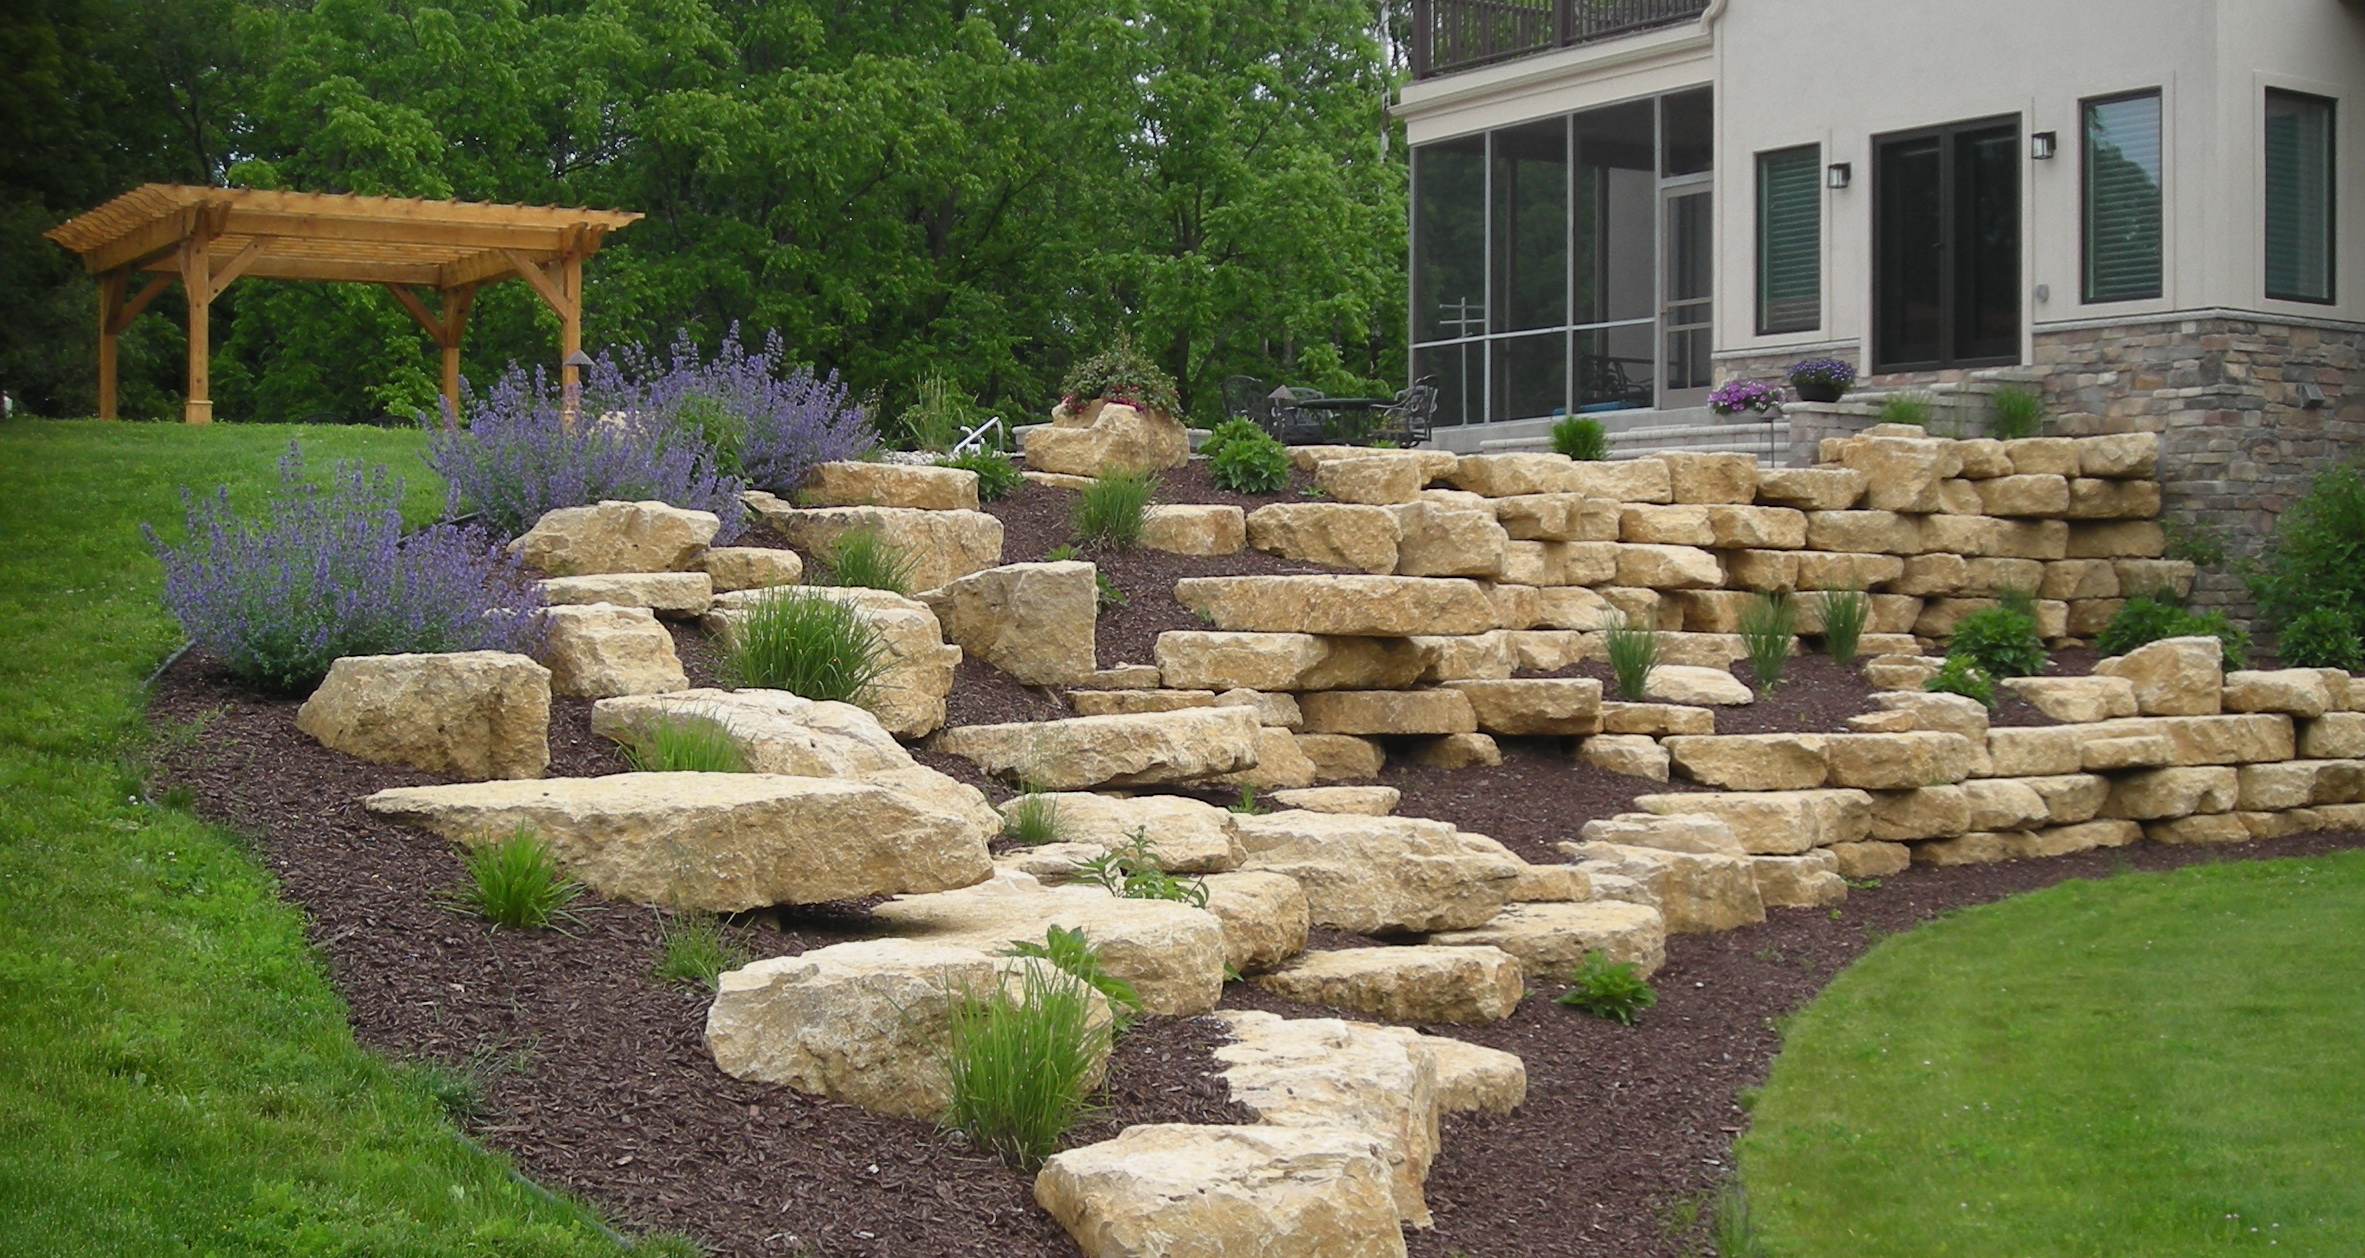 Landscaping And Gardening Services Can Add Value To Your Landscape